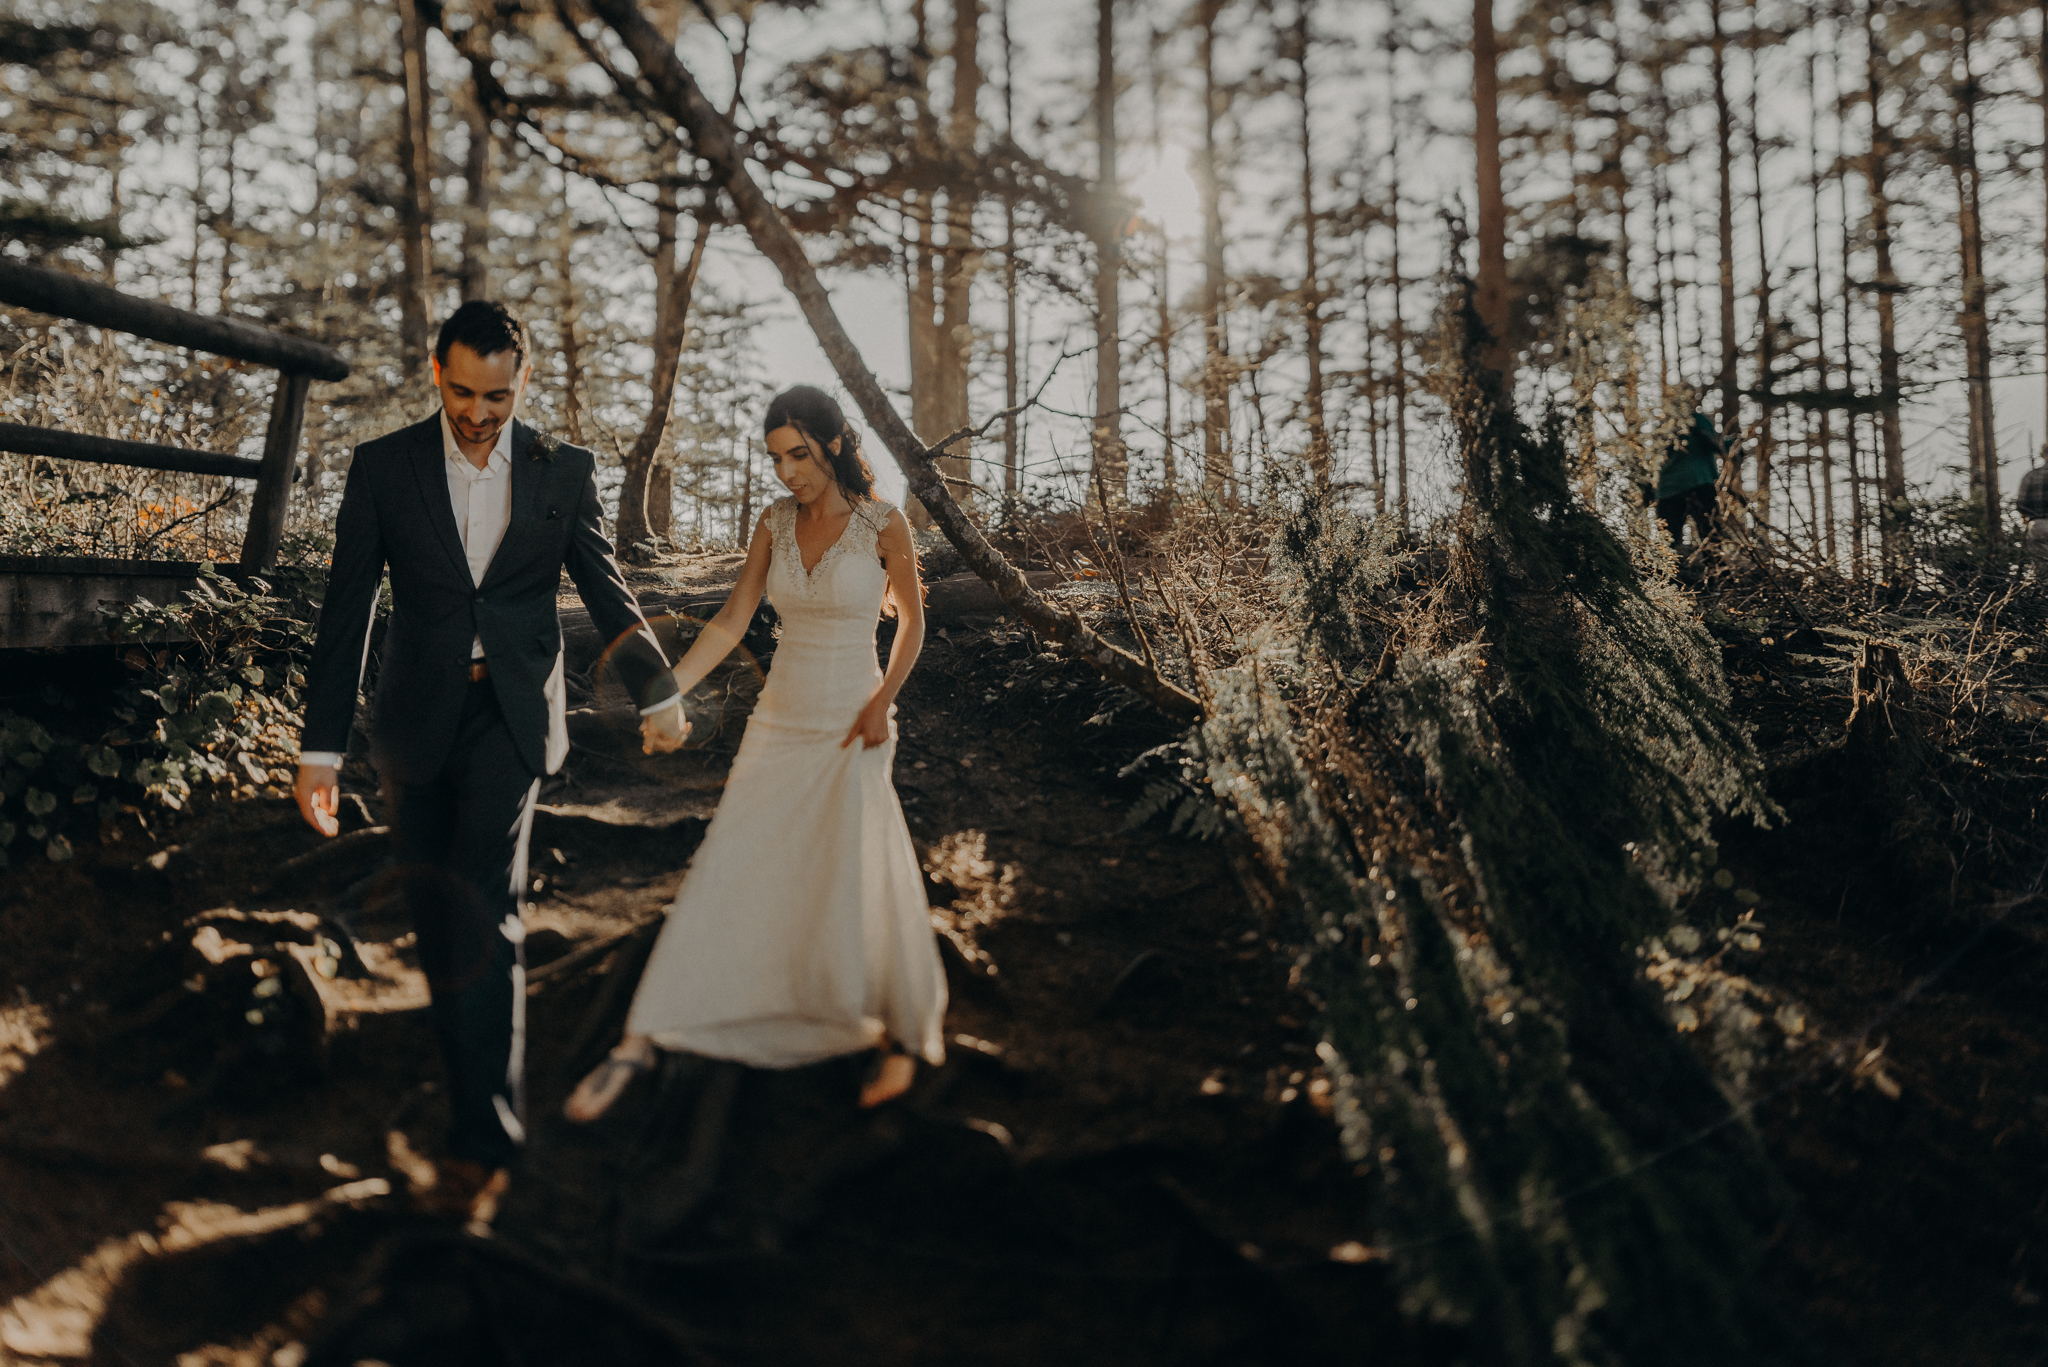 Isaiah + Taylor Photography - Cape Flattery Elopement, Olympia National Forest Wedding Photographer-088.jpg